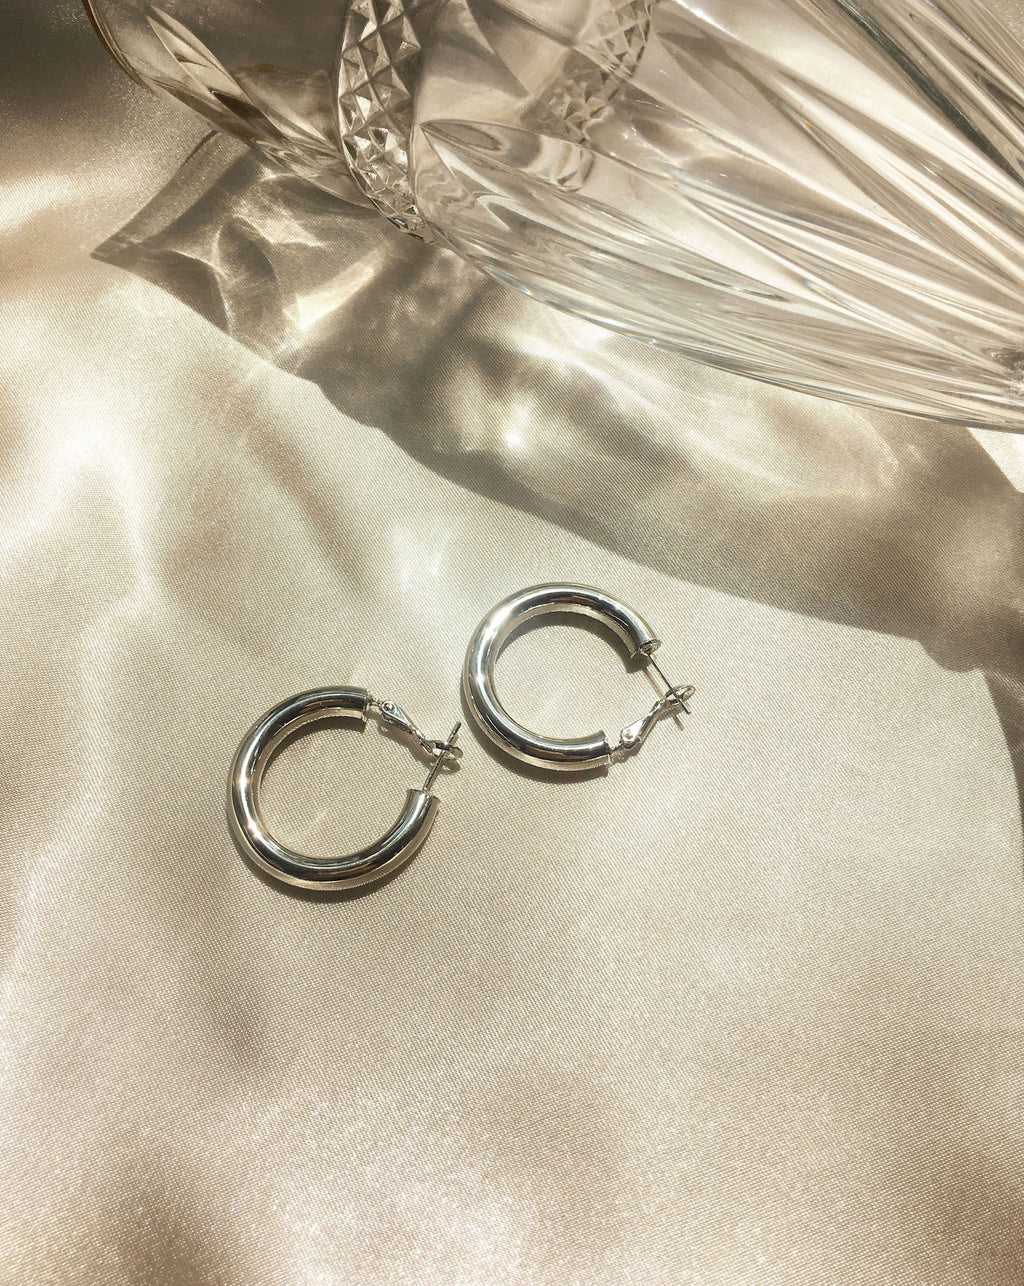 28mm silver hollow tubular hoop earrings in small - TheHexad Jewelry